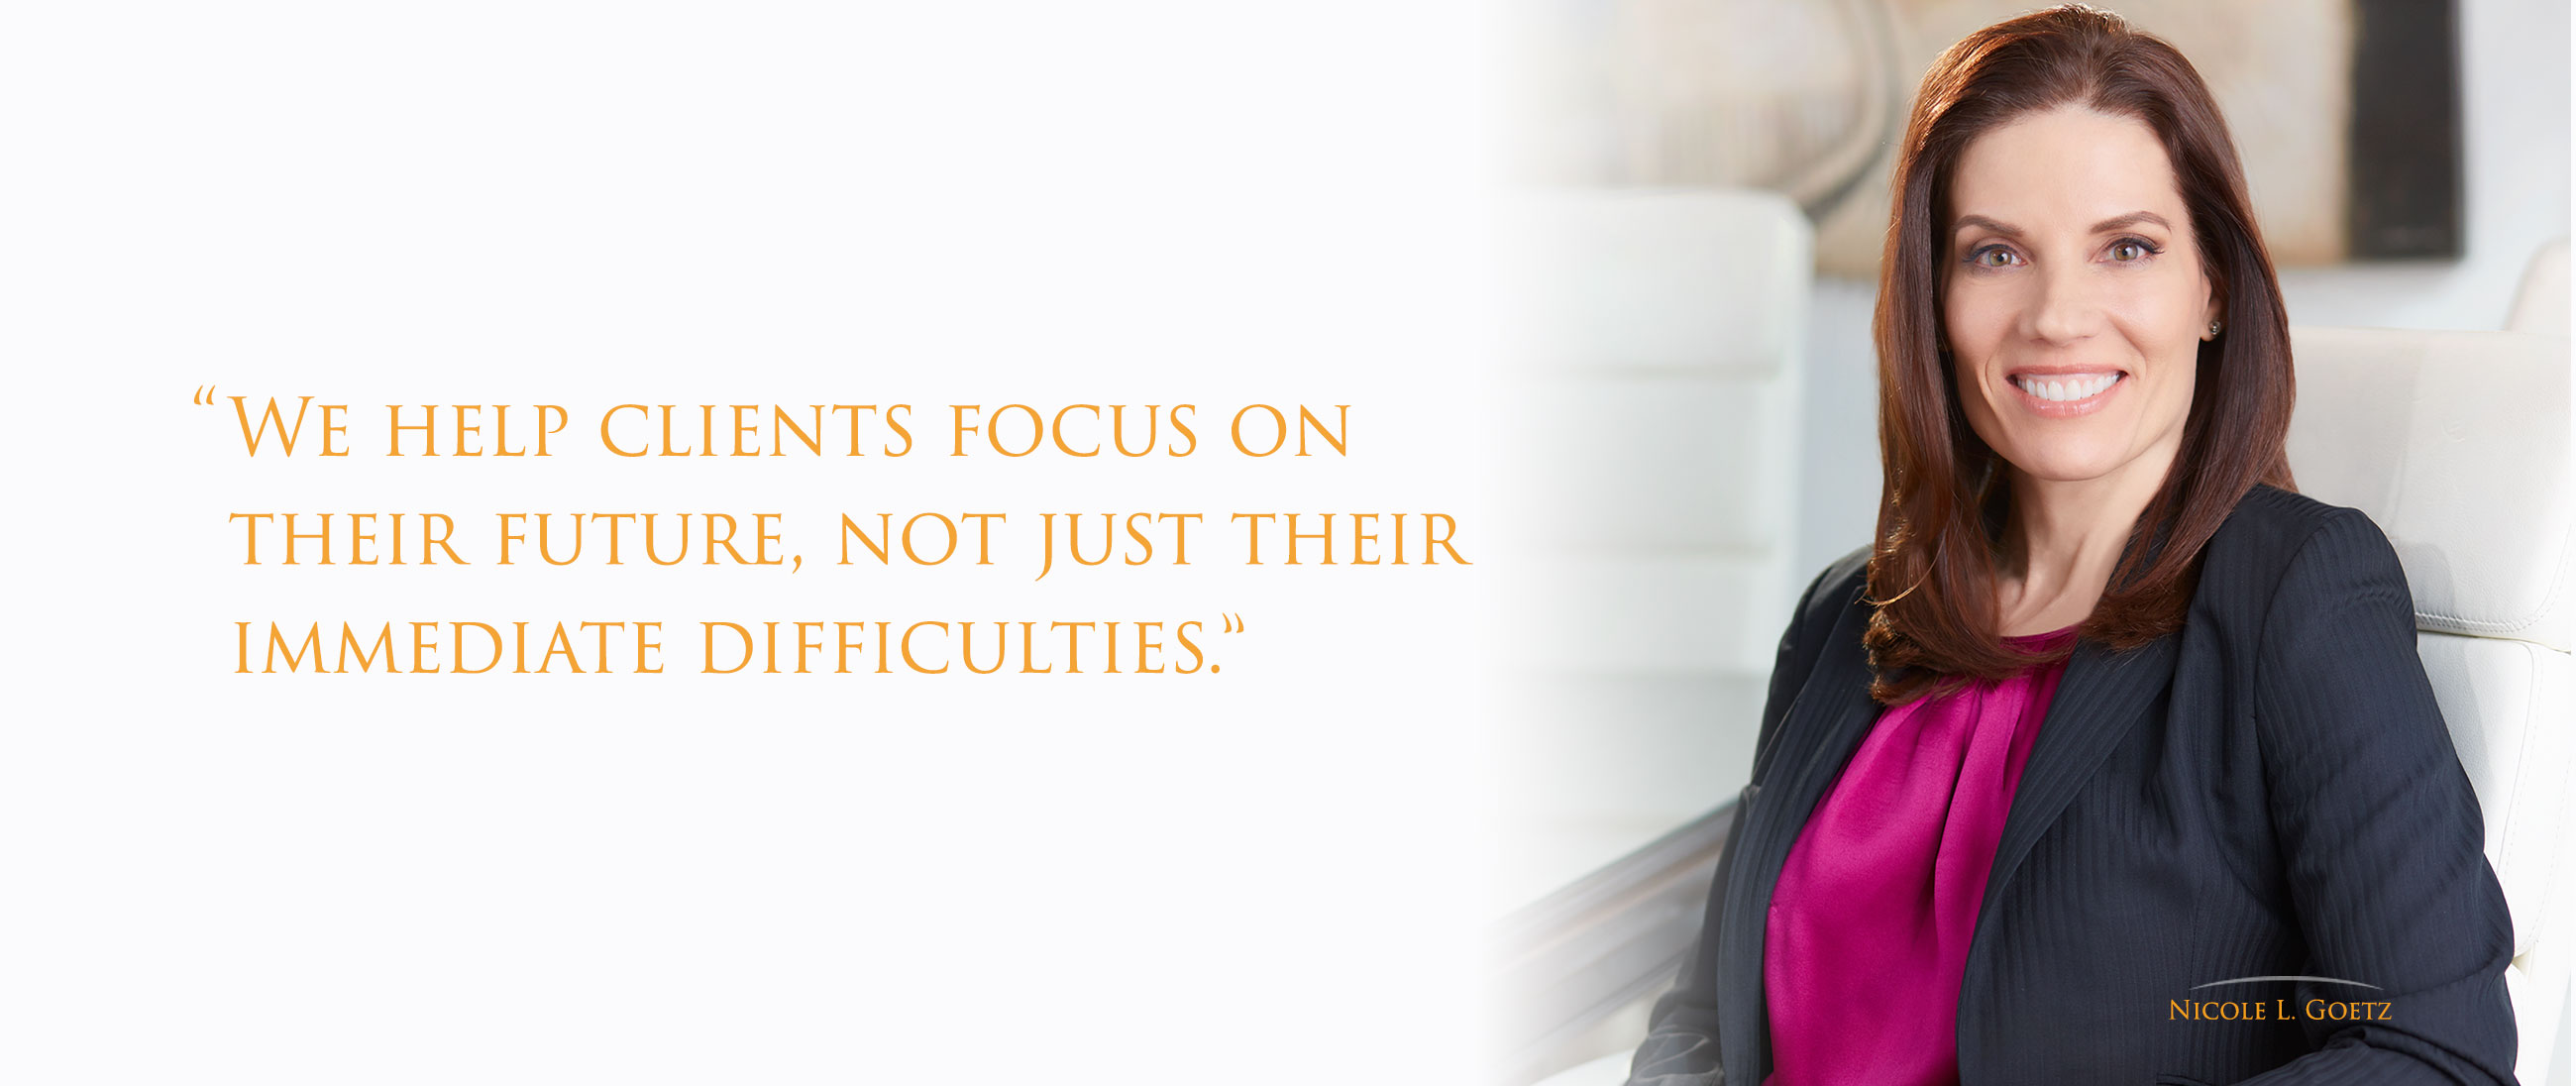 """We help clients focus on their future not just their immediate difficulties."""